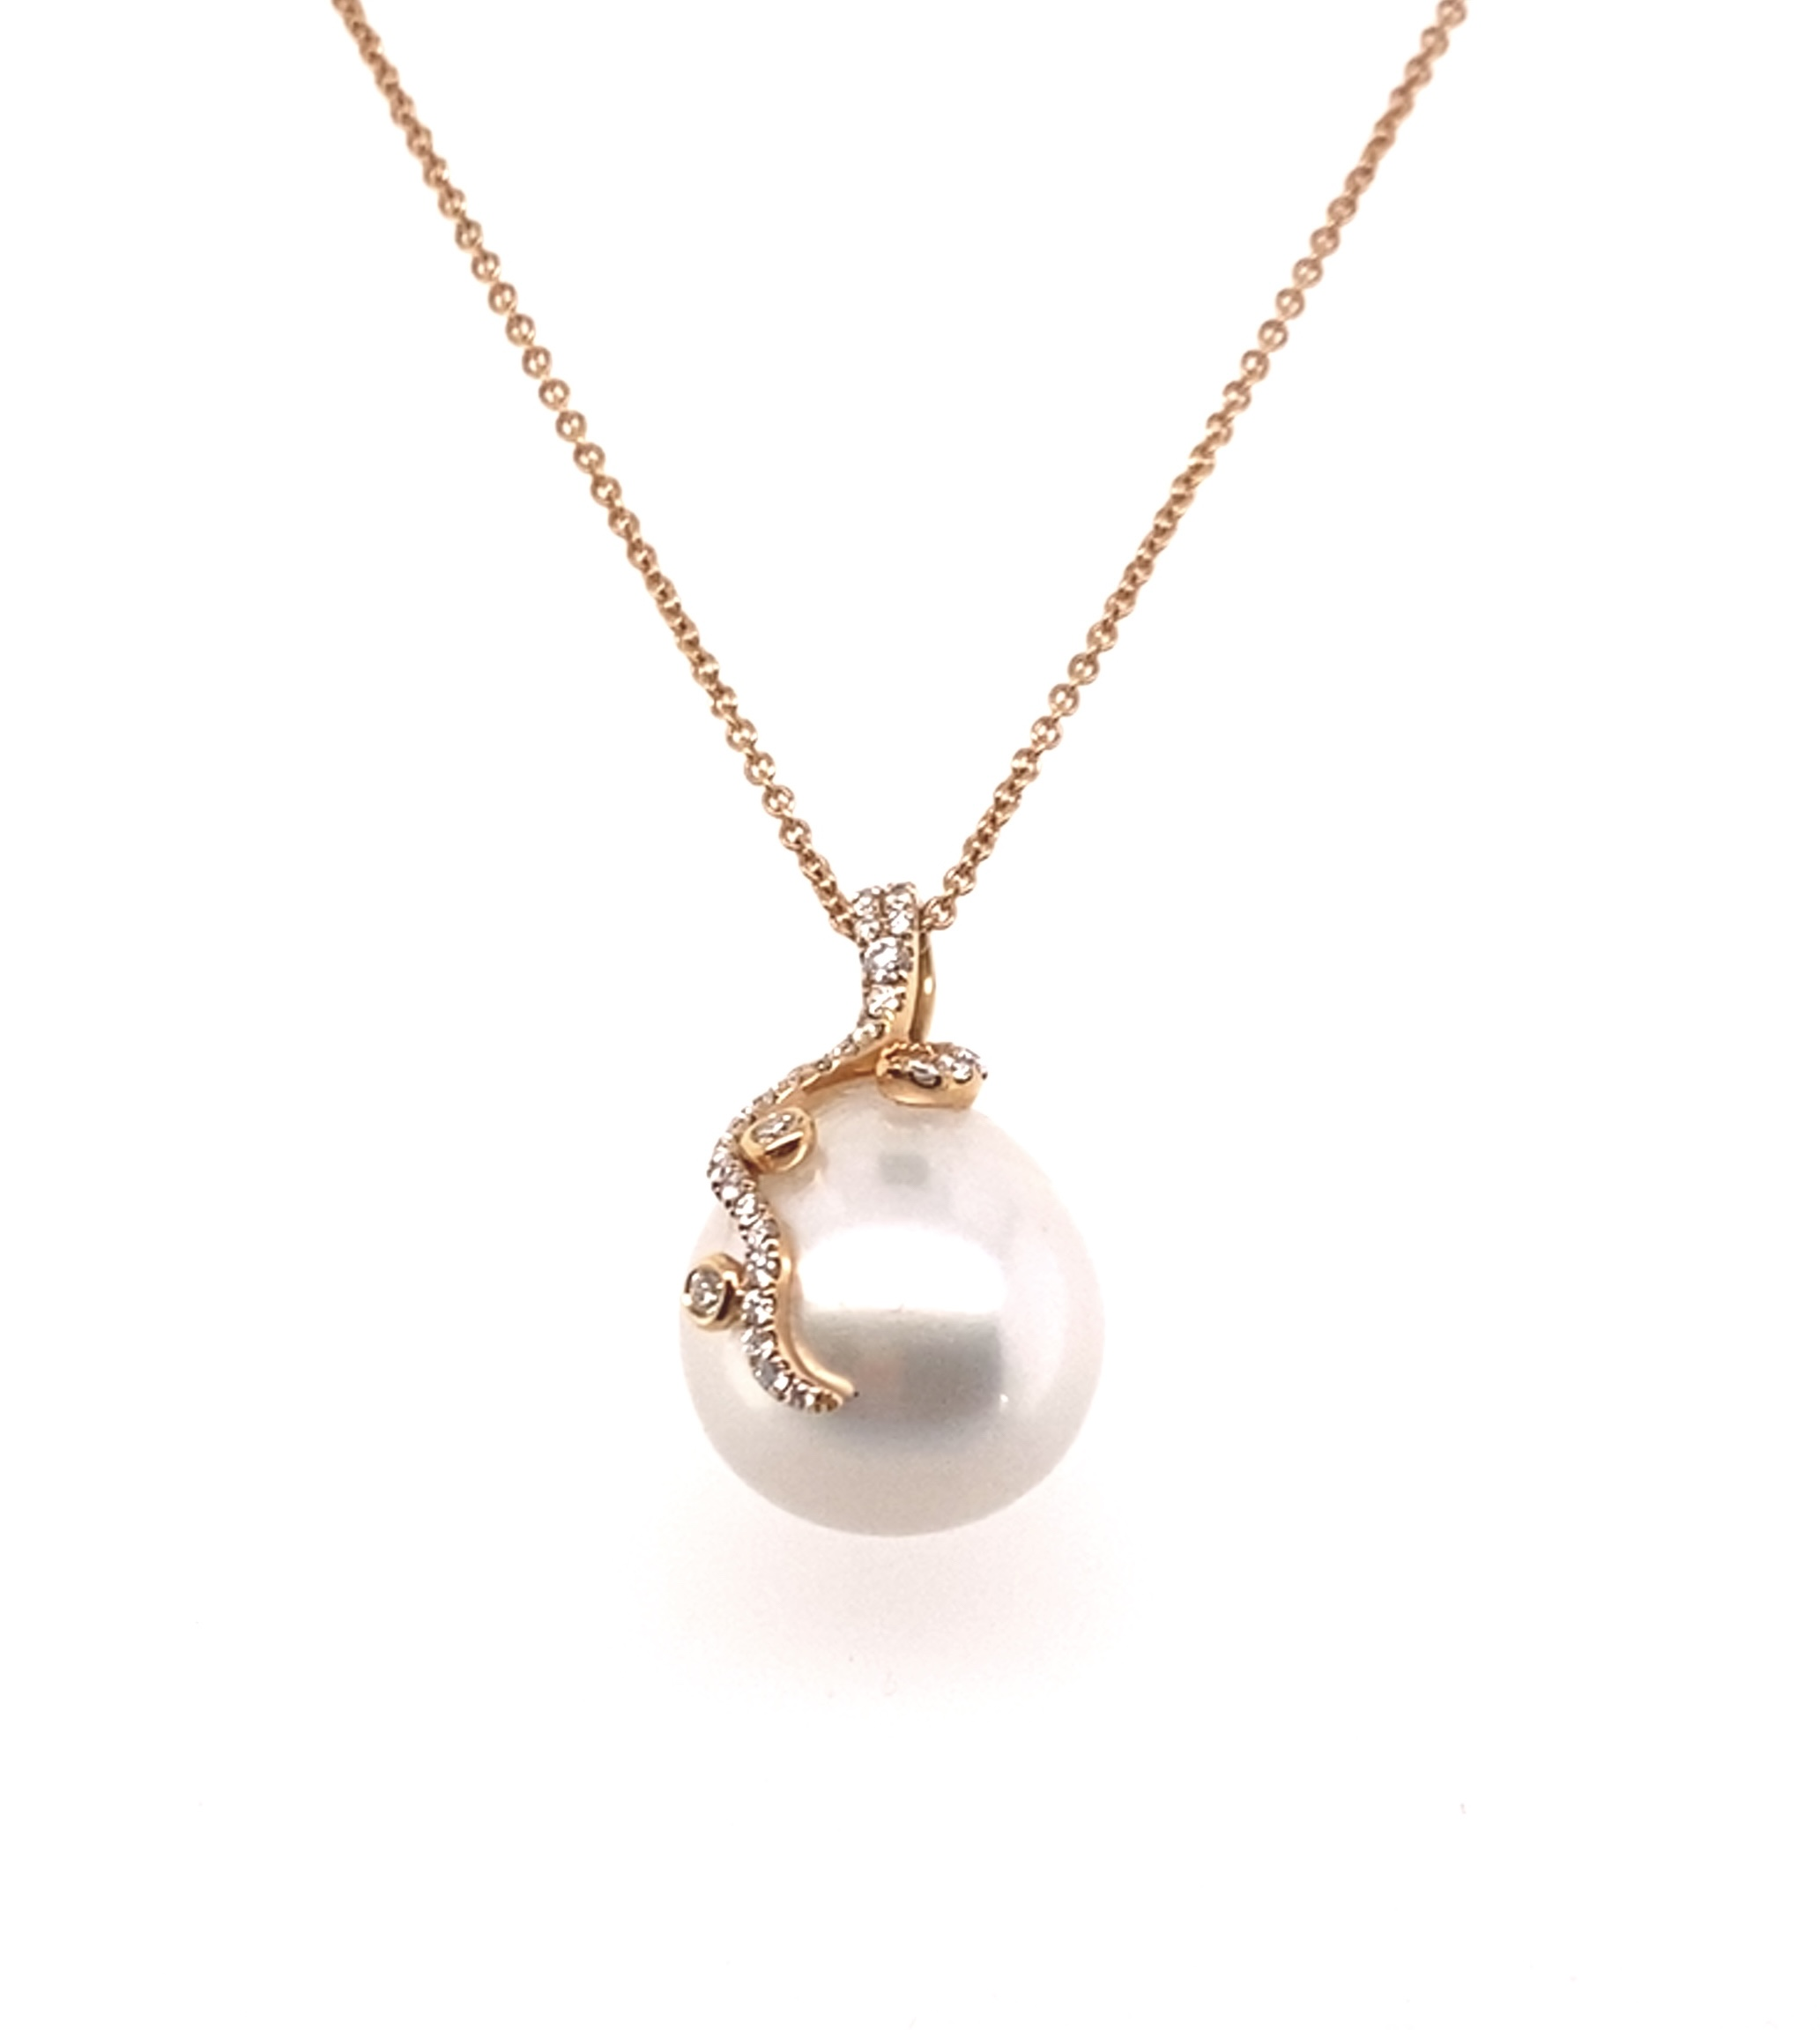 A South Sea Pearl pendant in 18ct Rose Gold